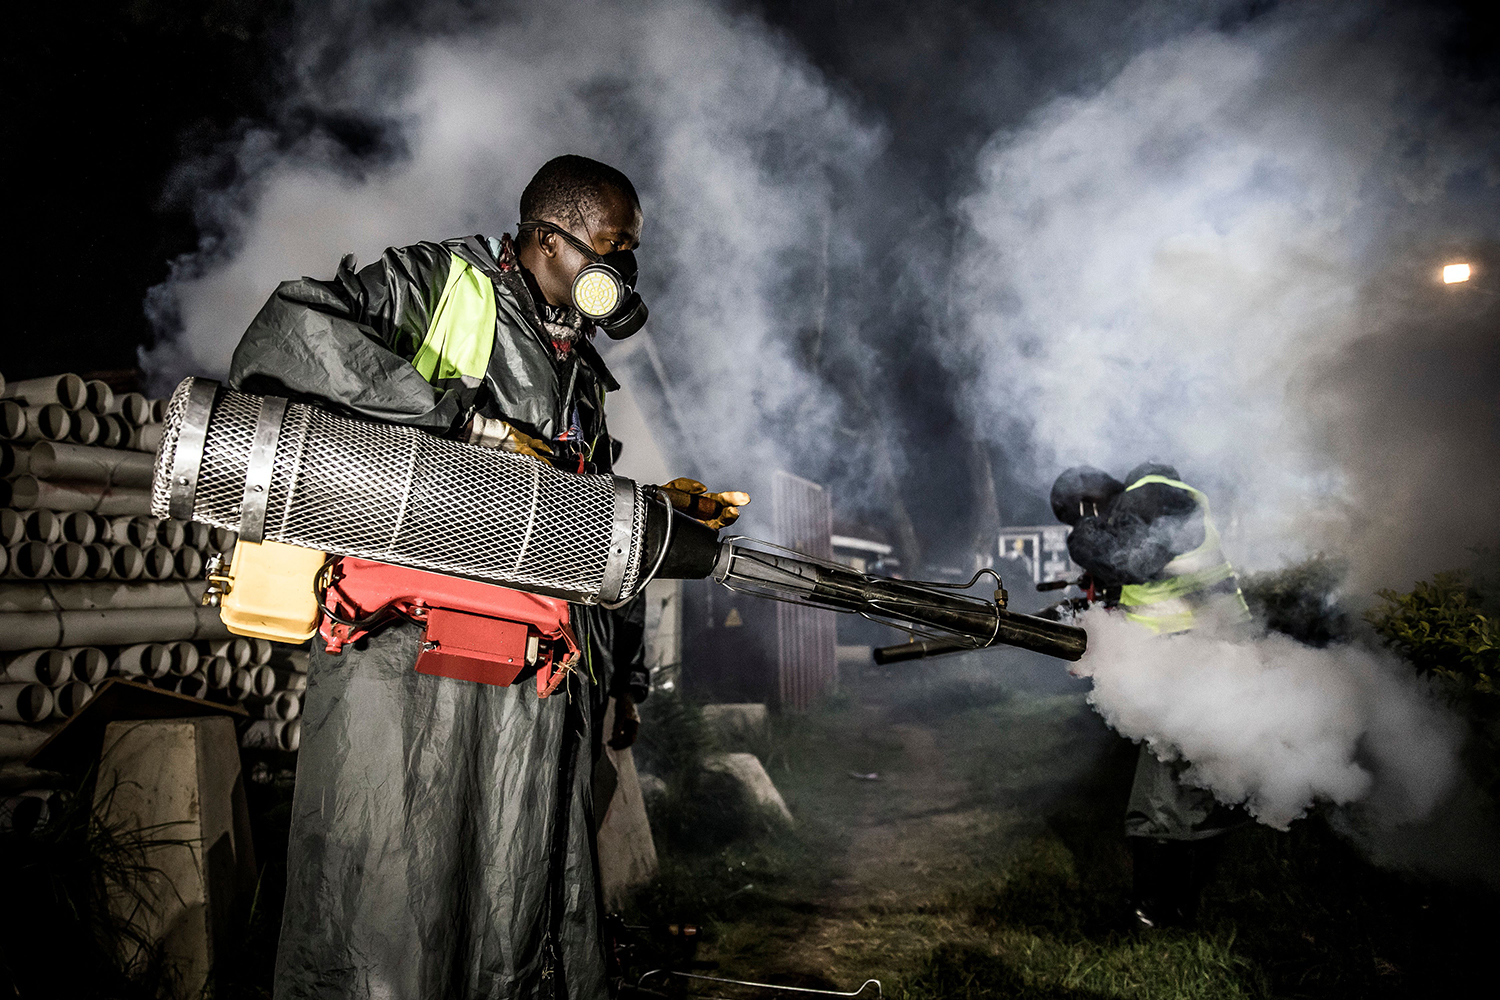 A member of a privately funded nongovernmental organization fumigates and disinfects the streets and the stalls at Parklands City Park Market in Nairobi, Kenya, to help curb the spread of the coronavirus April 15. LUIS TATO/AFP via Getty Images